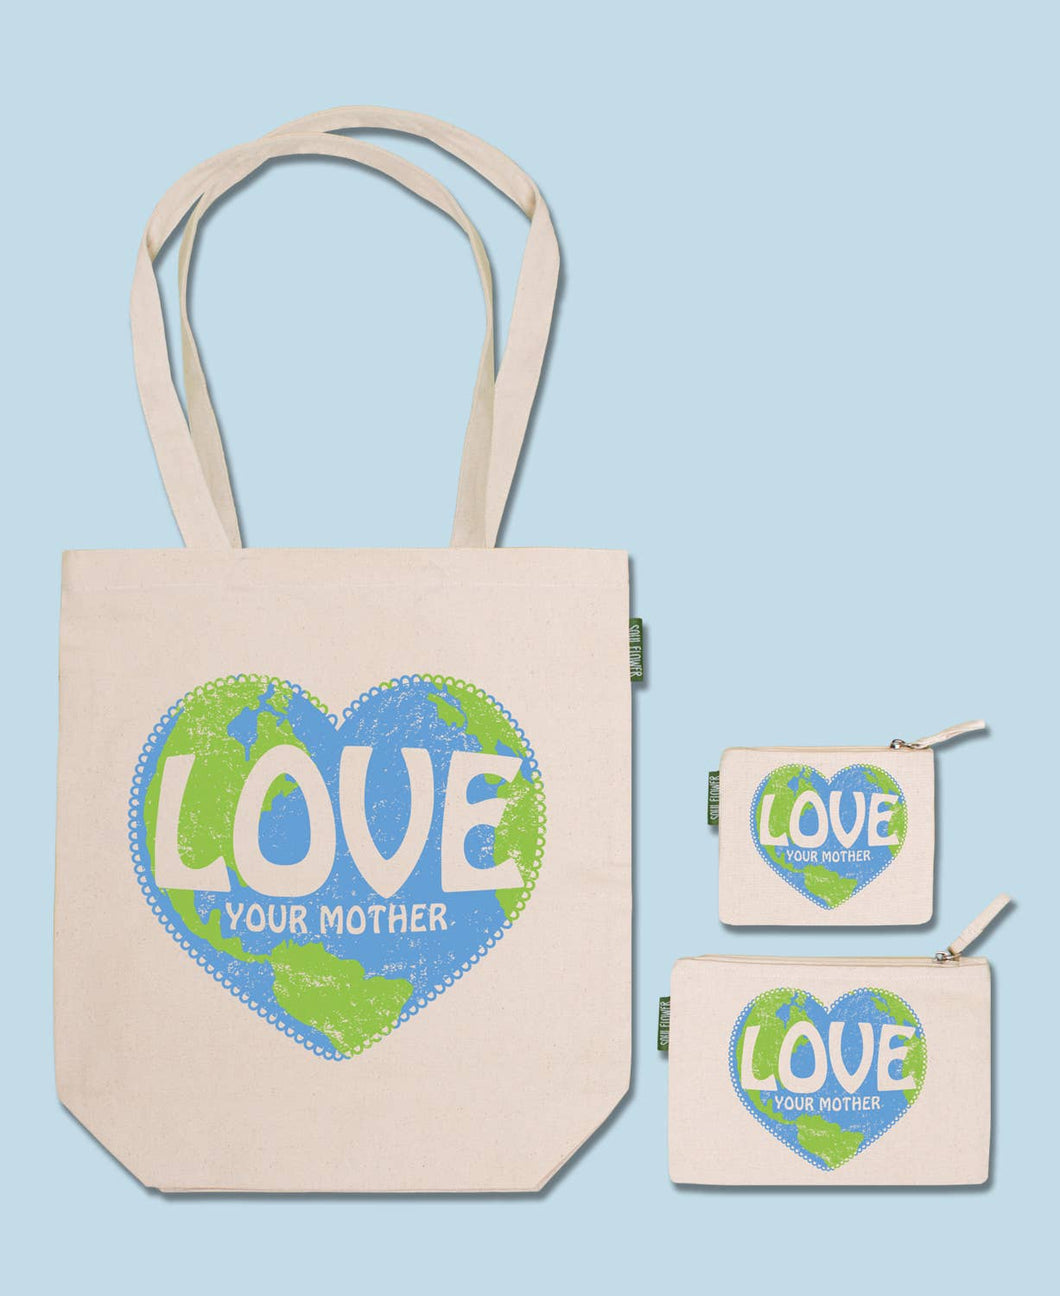 Soul Flower - Love Your Mother Eco Tote Bag & Pouch Set